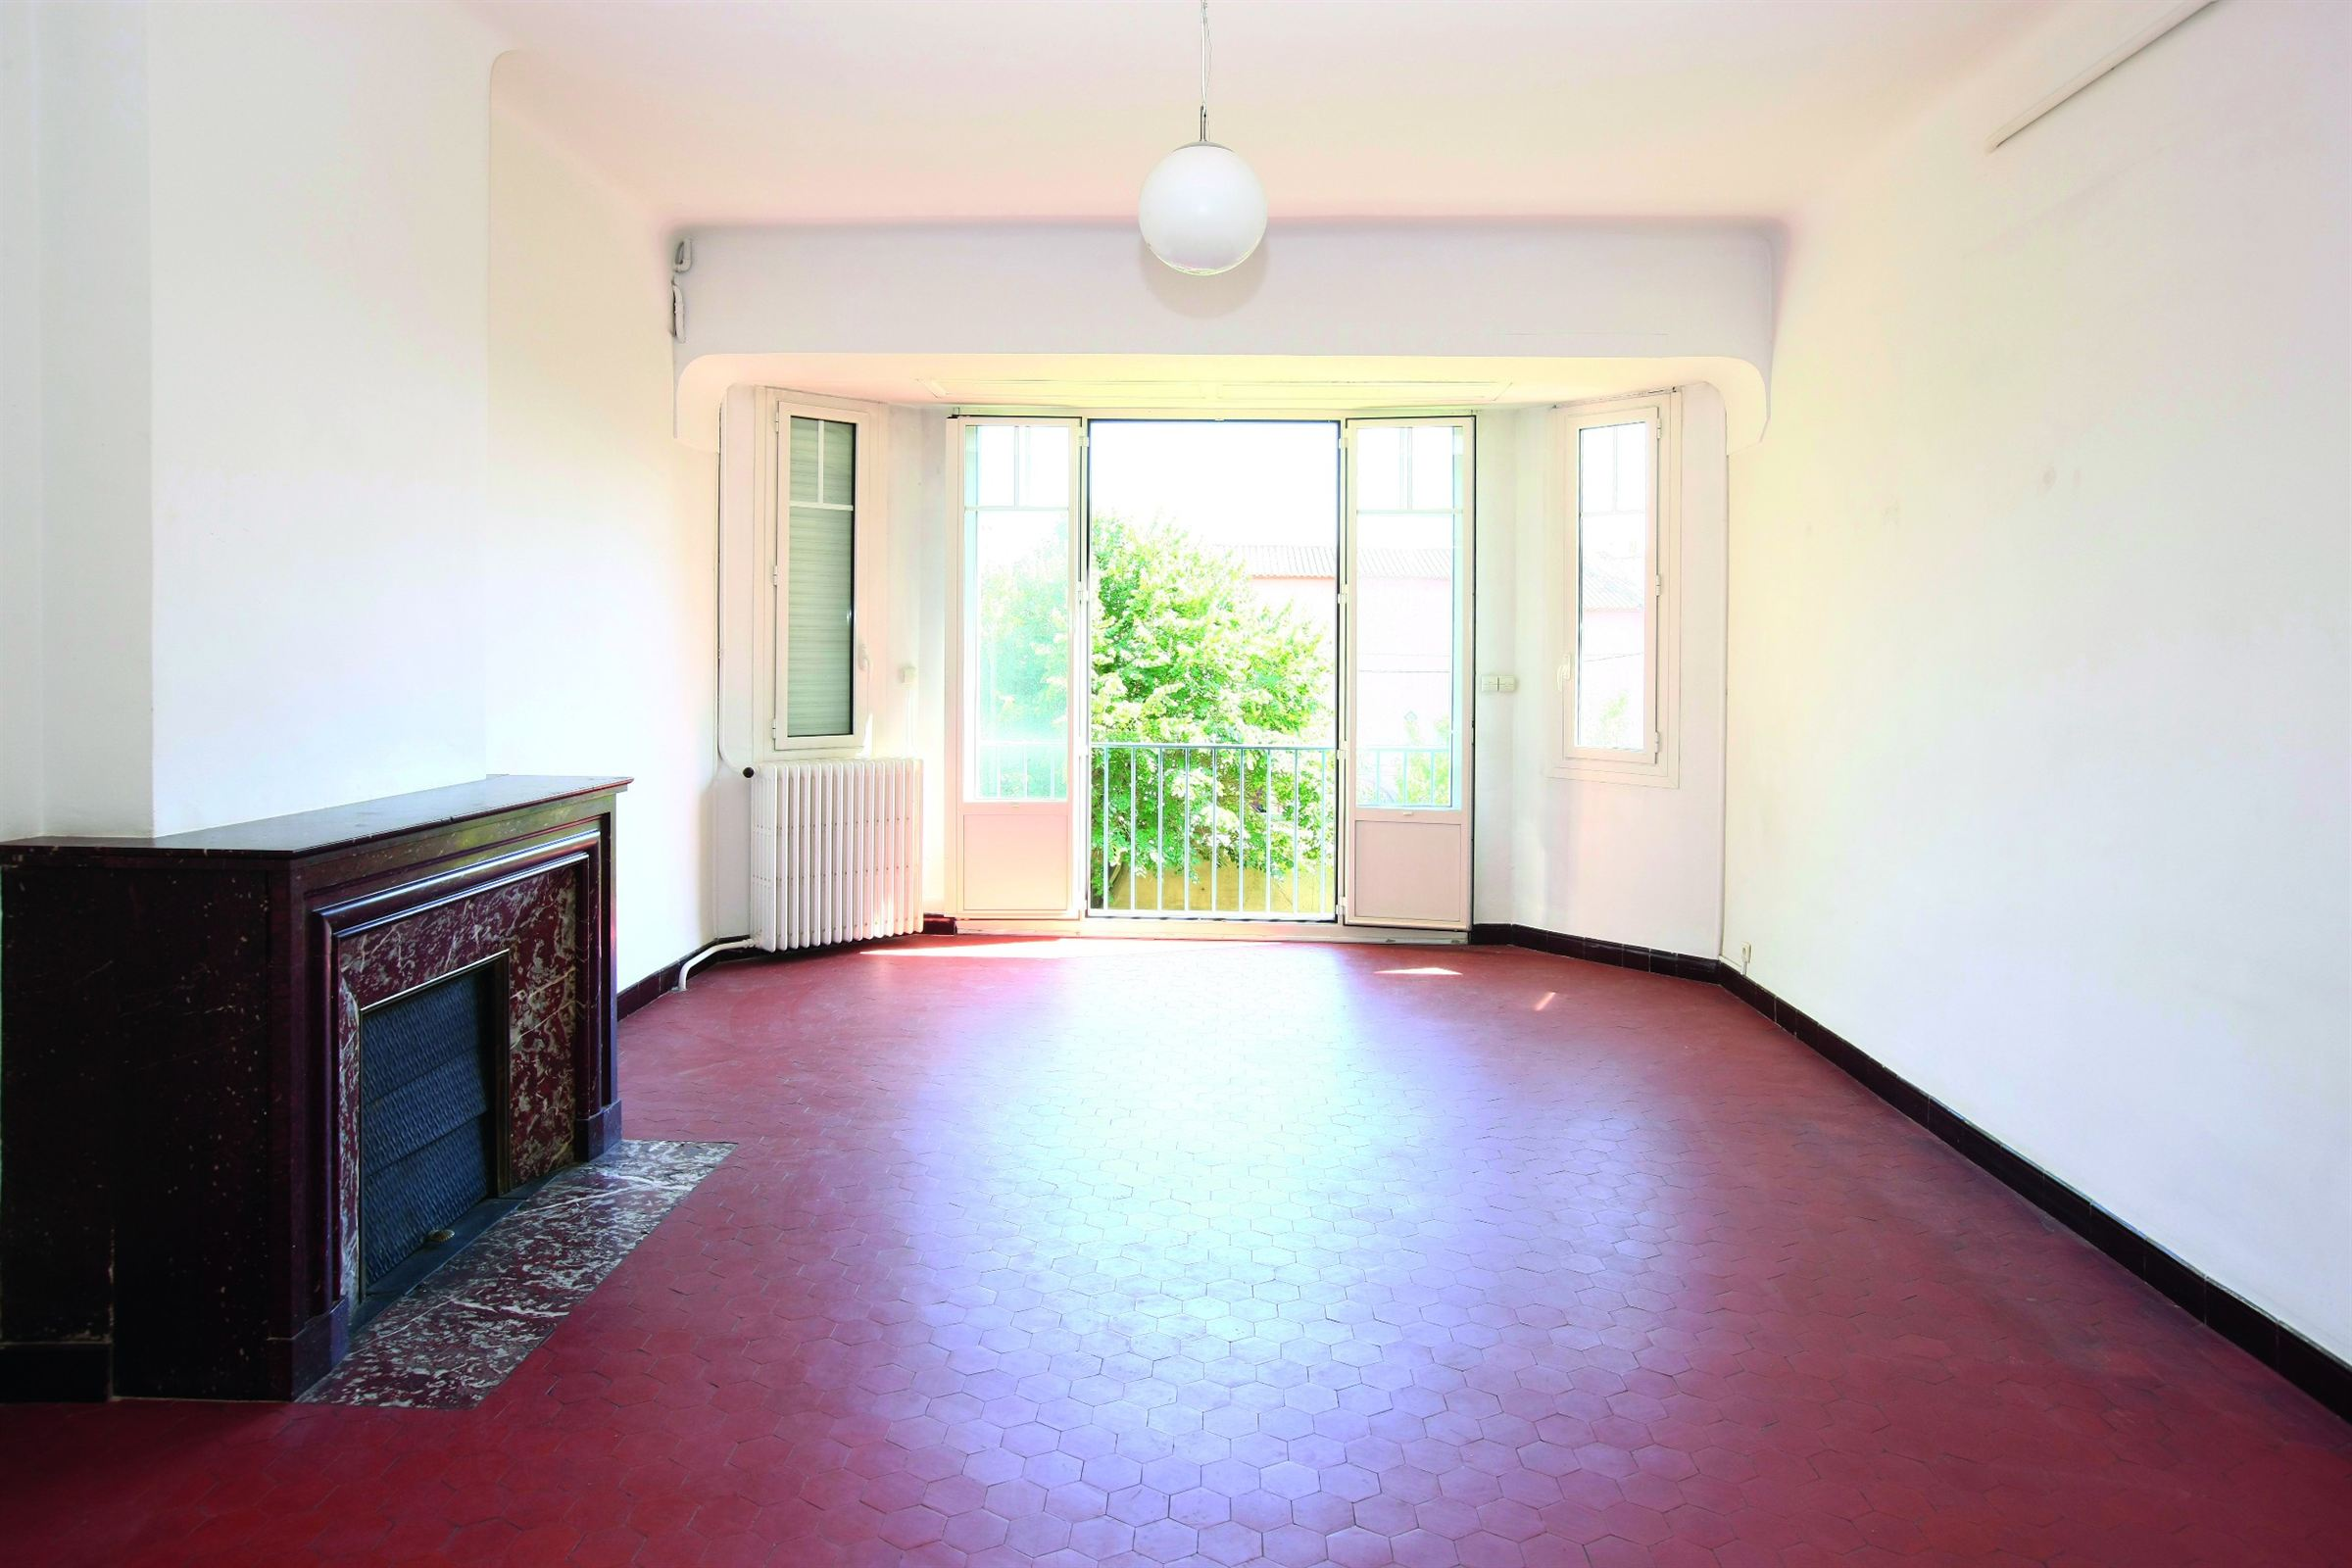 Property For Sale at 2minutes by foot from Cours Mirabeau - Aix-en-Provence